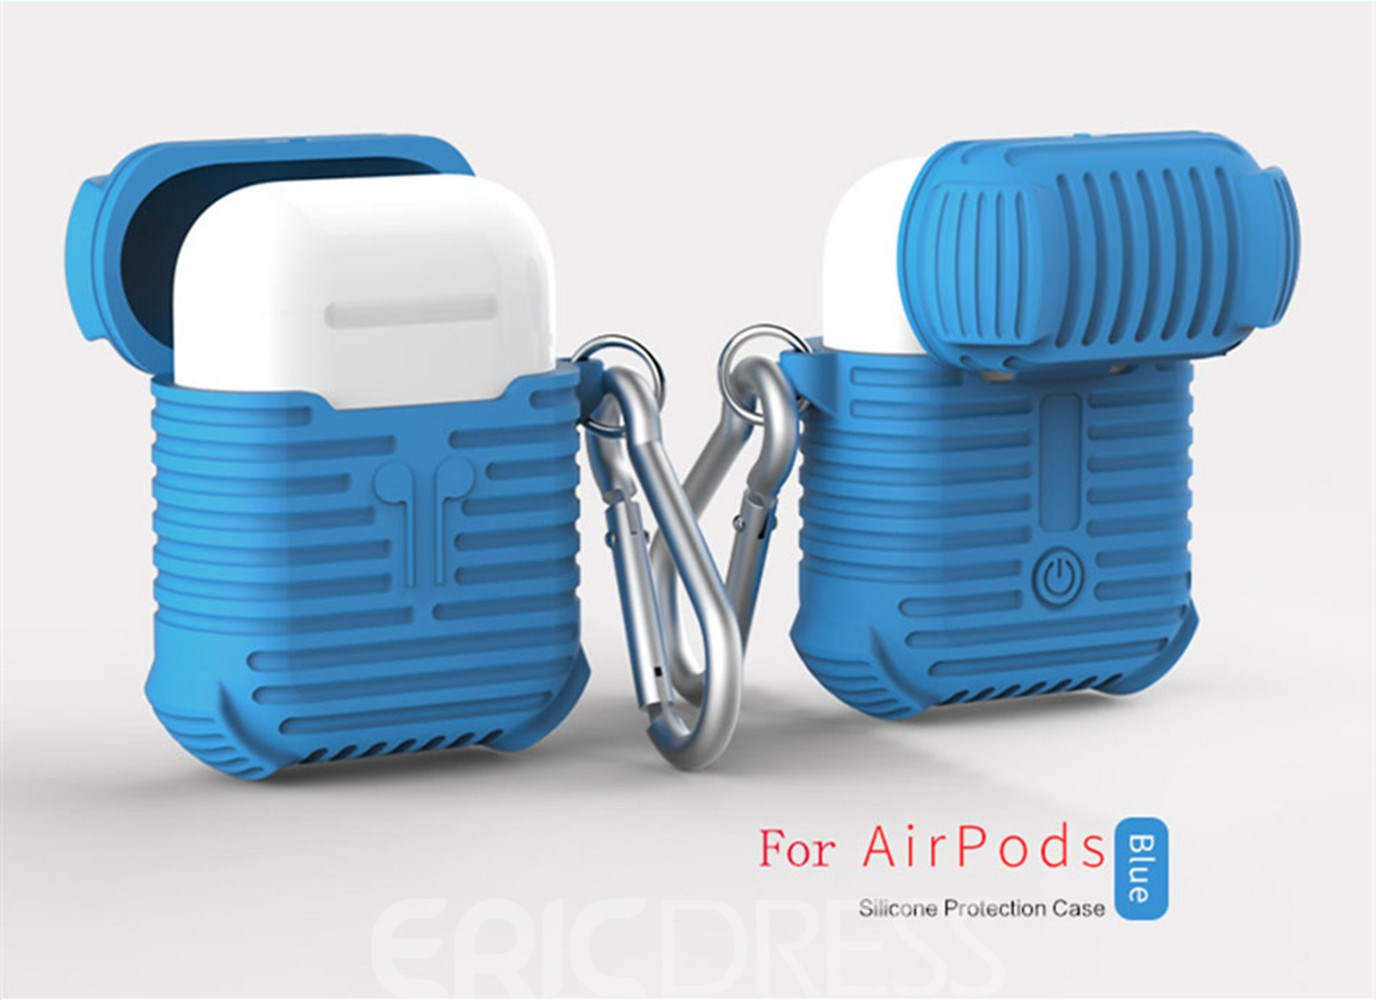 Ericdress Soft Siliconer Apple AirPods Cases